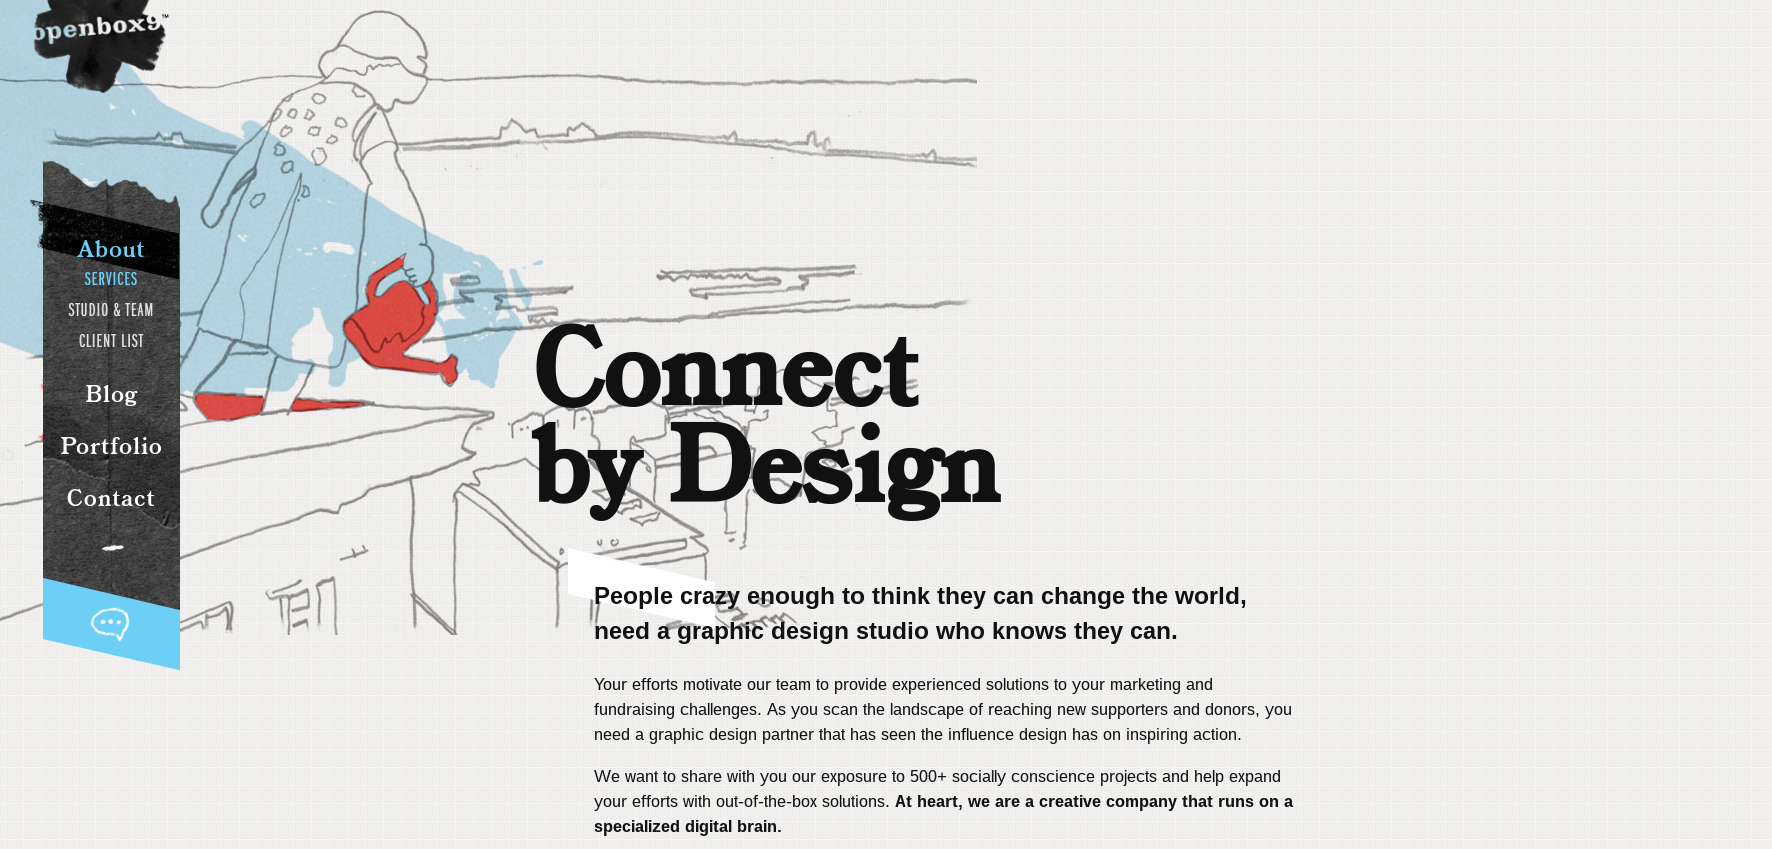 Openbox9 provides creative, out-of-the-box web design solutions to nonprofits.